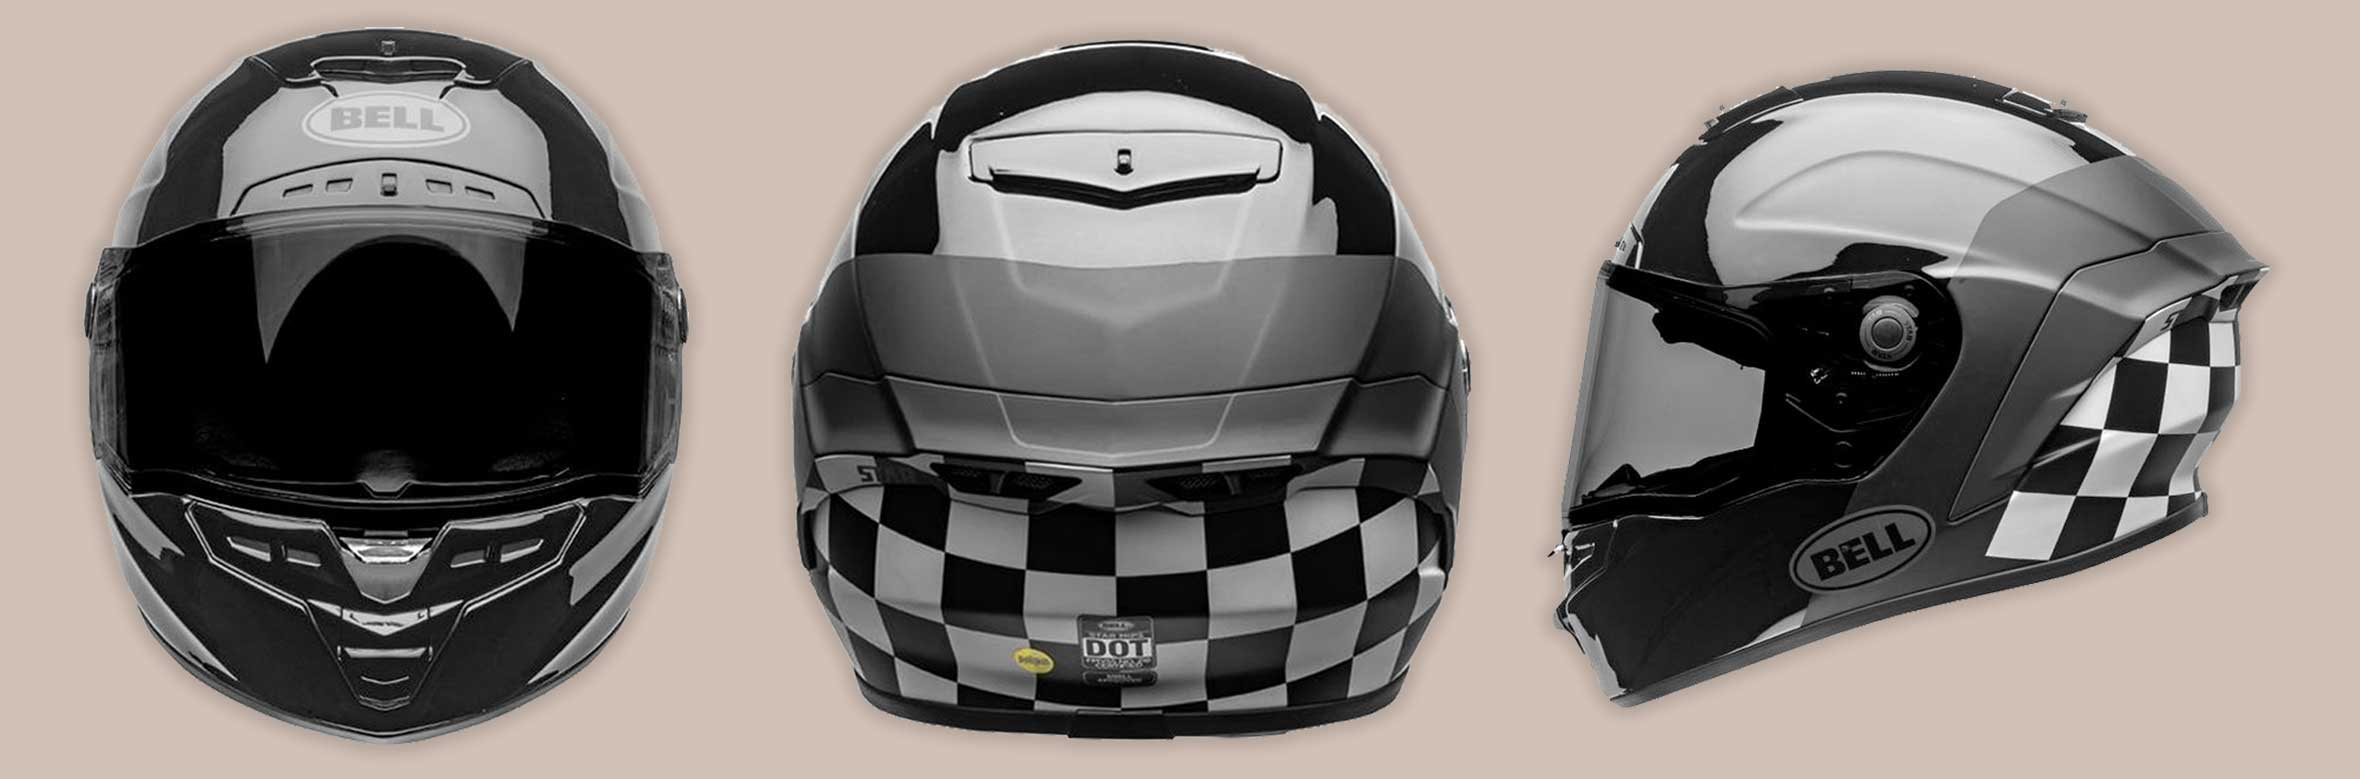 Bell Moto 2020 | LUX CHECKERS MATTE-GLOSS BLACK-WHITE